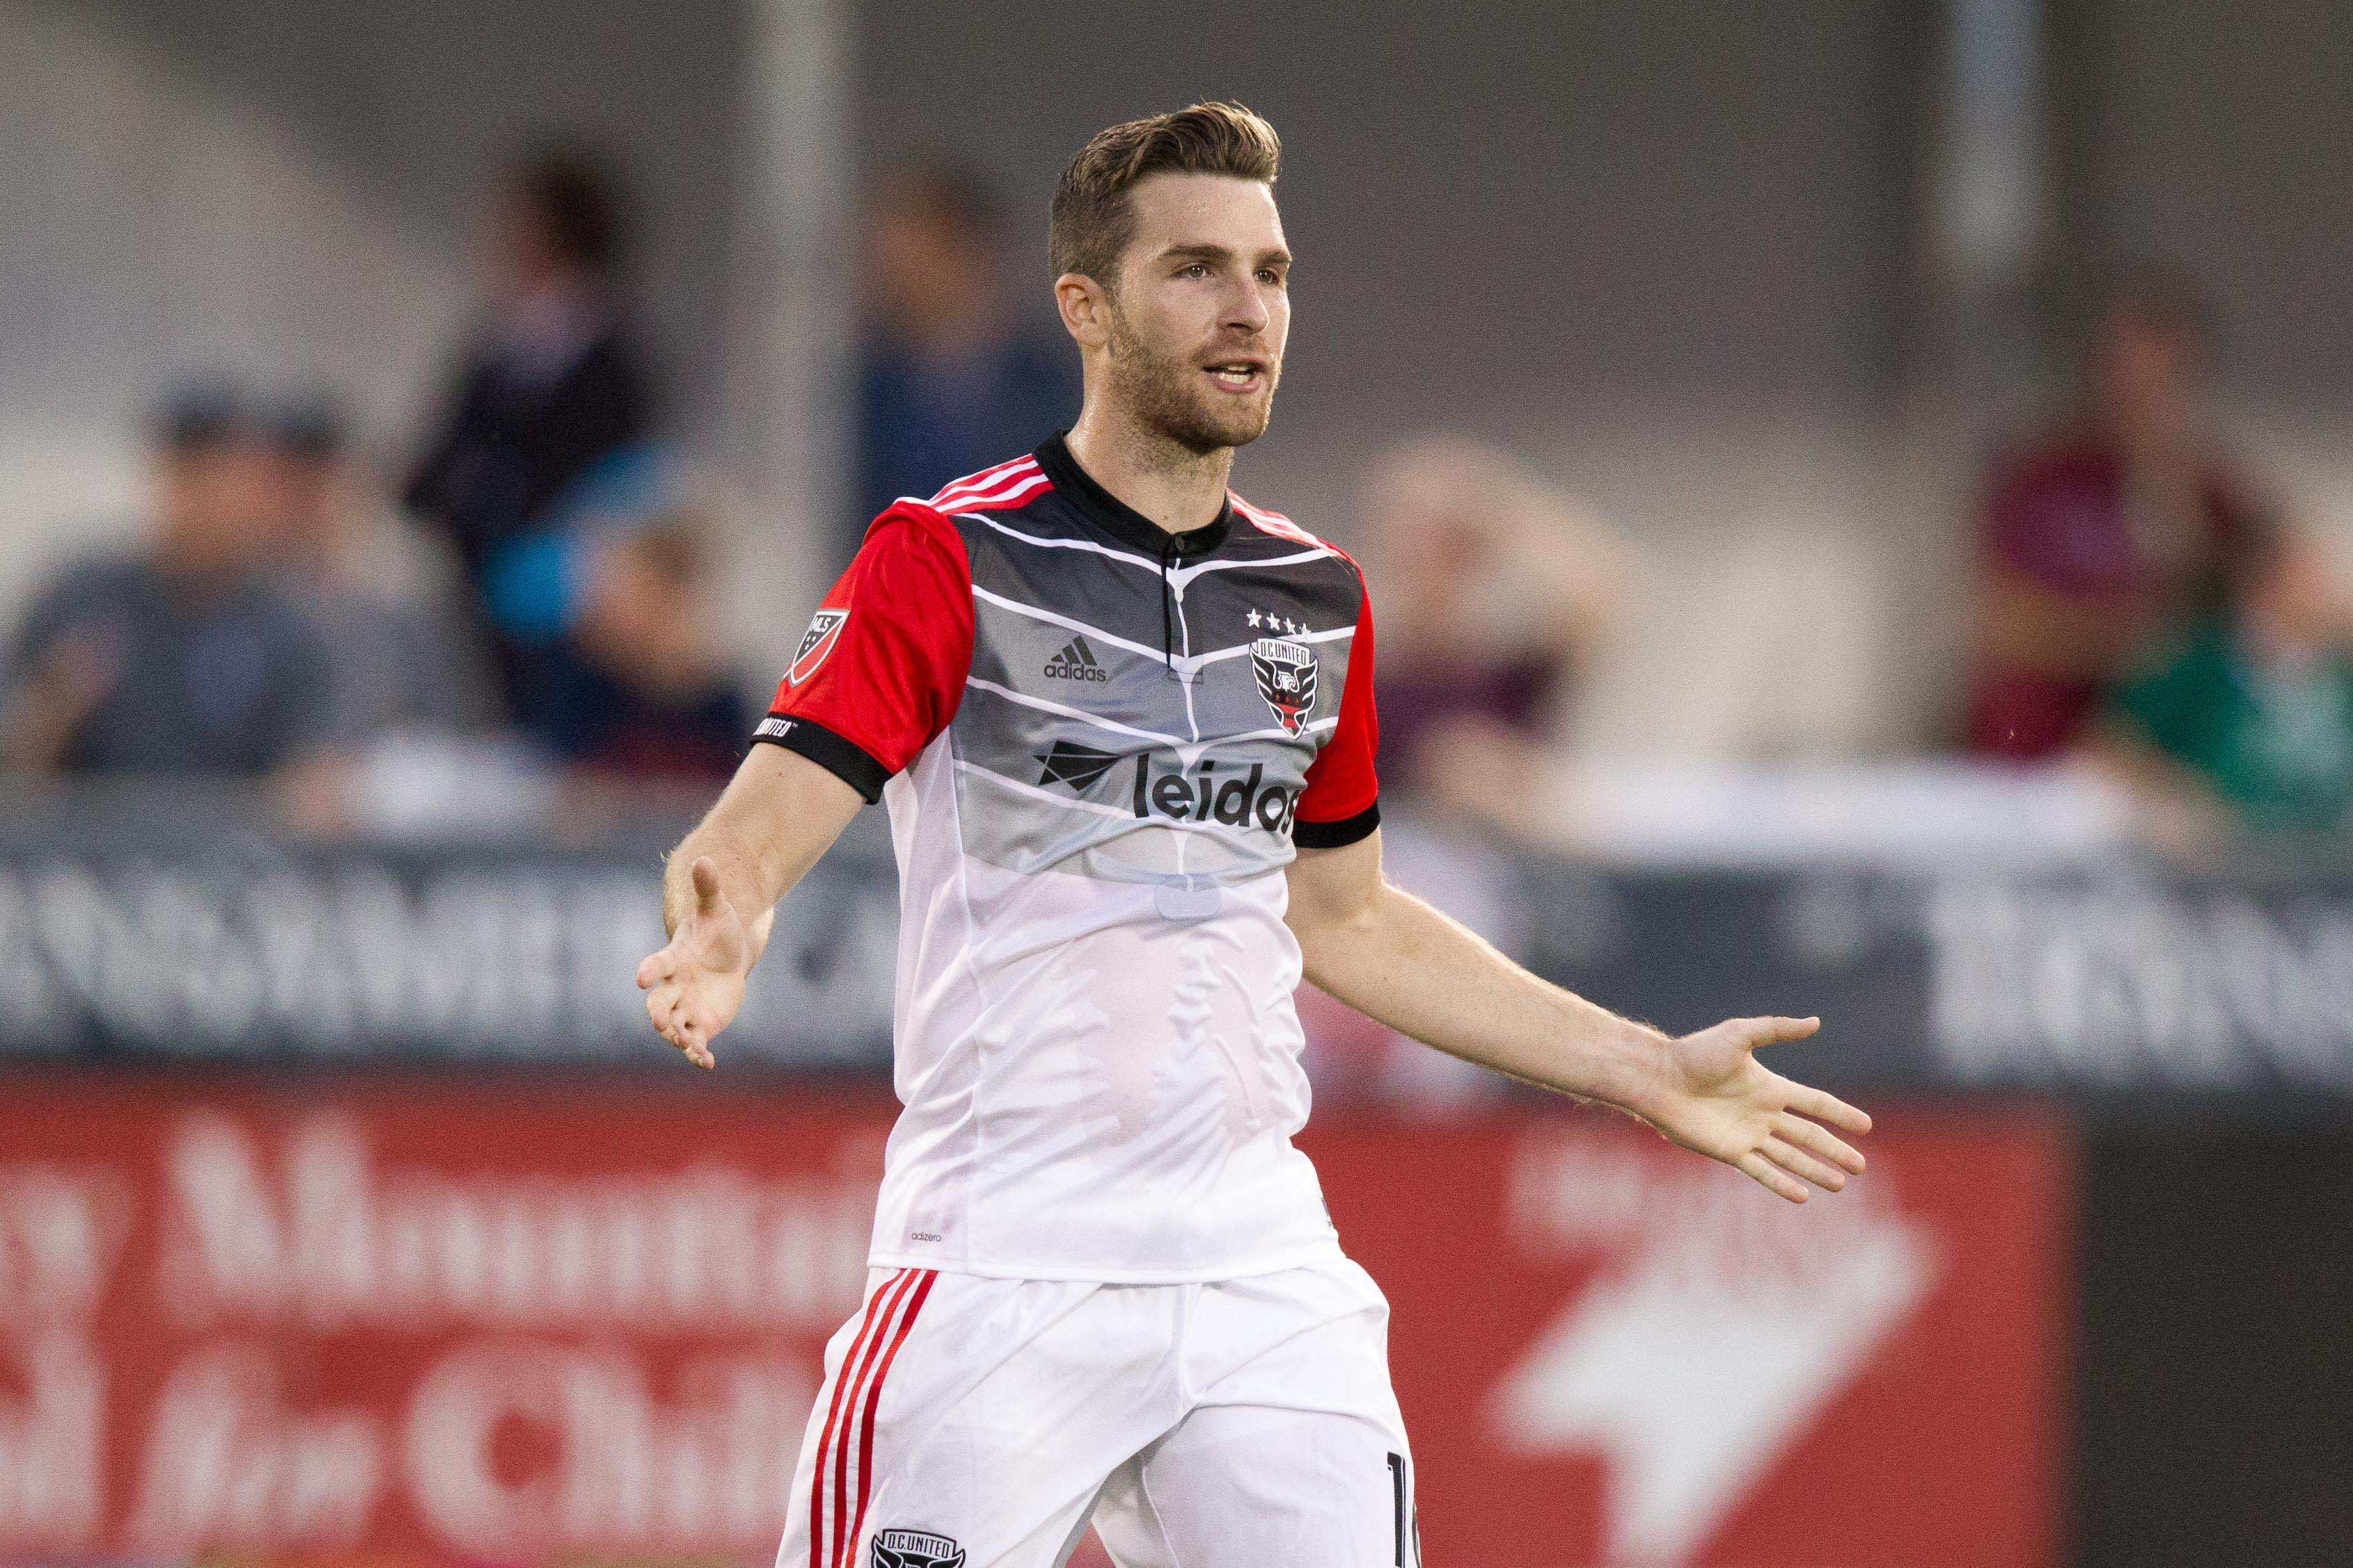 Own goal by Colorado Rapids helps D.C. United end two-month winless streak